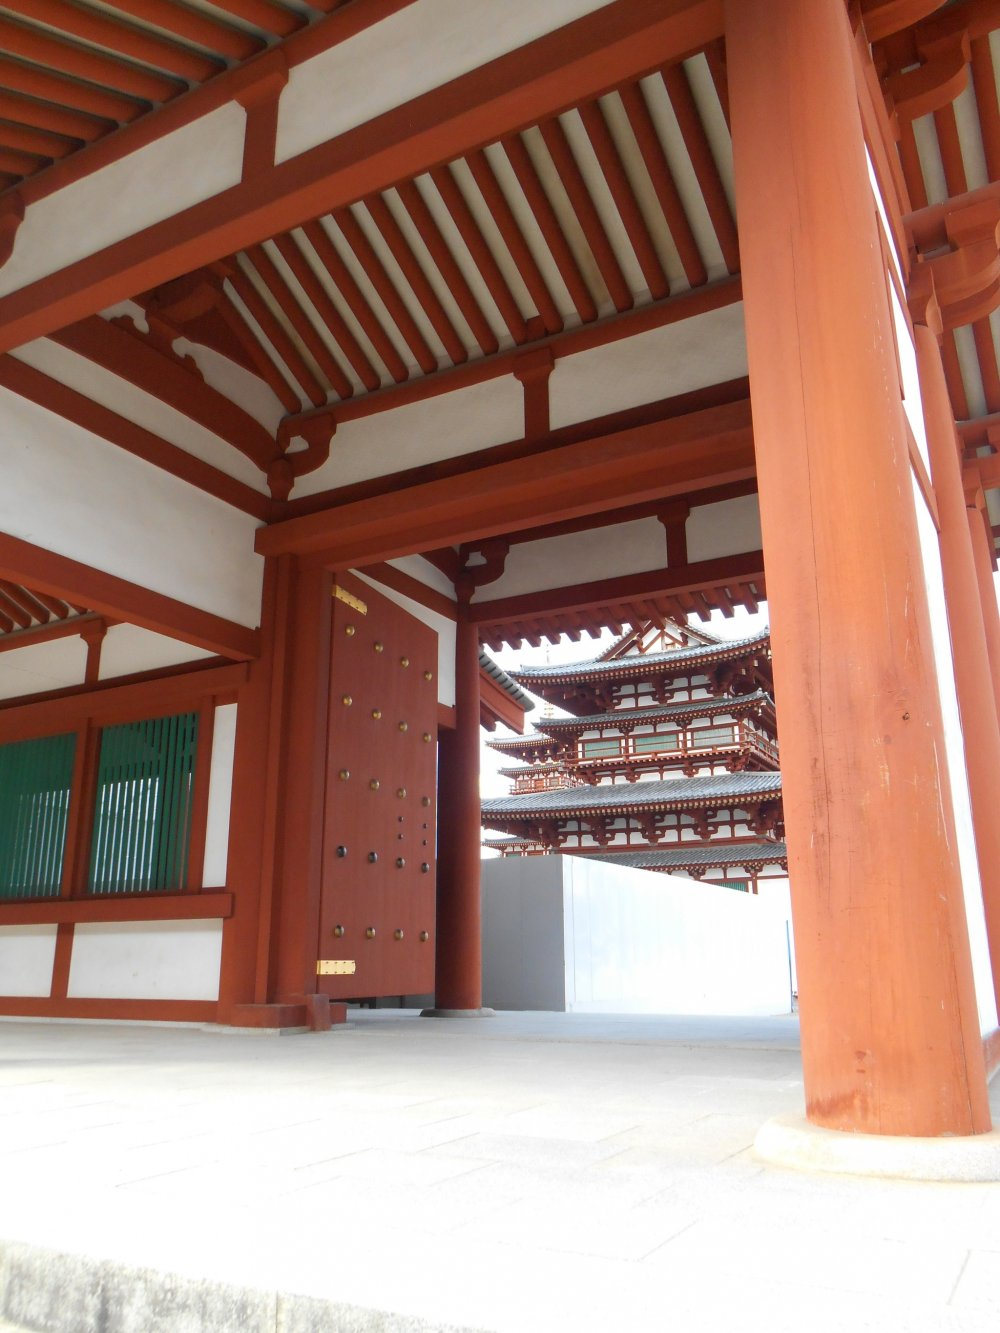 In 718, when Nara became the new Capital of the country, the temple was moved from Asuka to its current location.